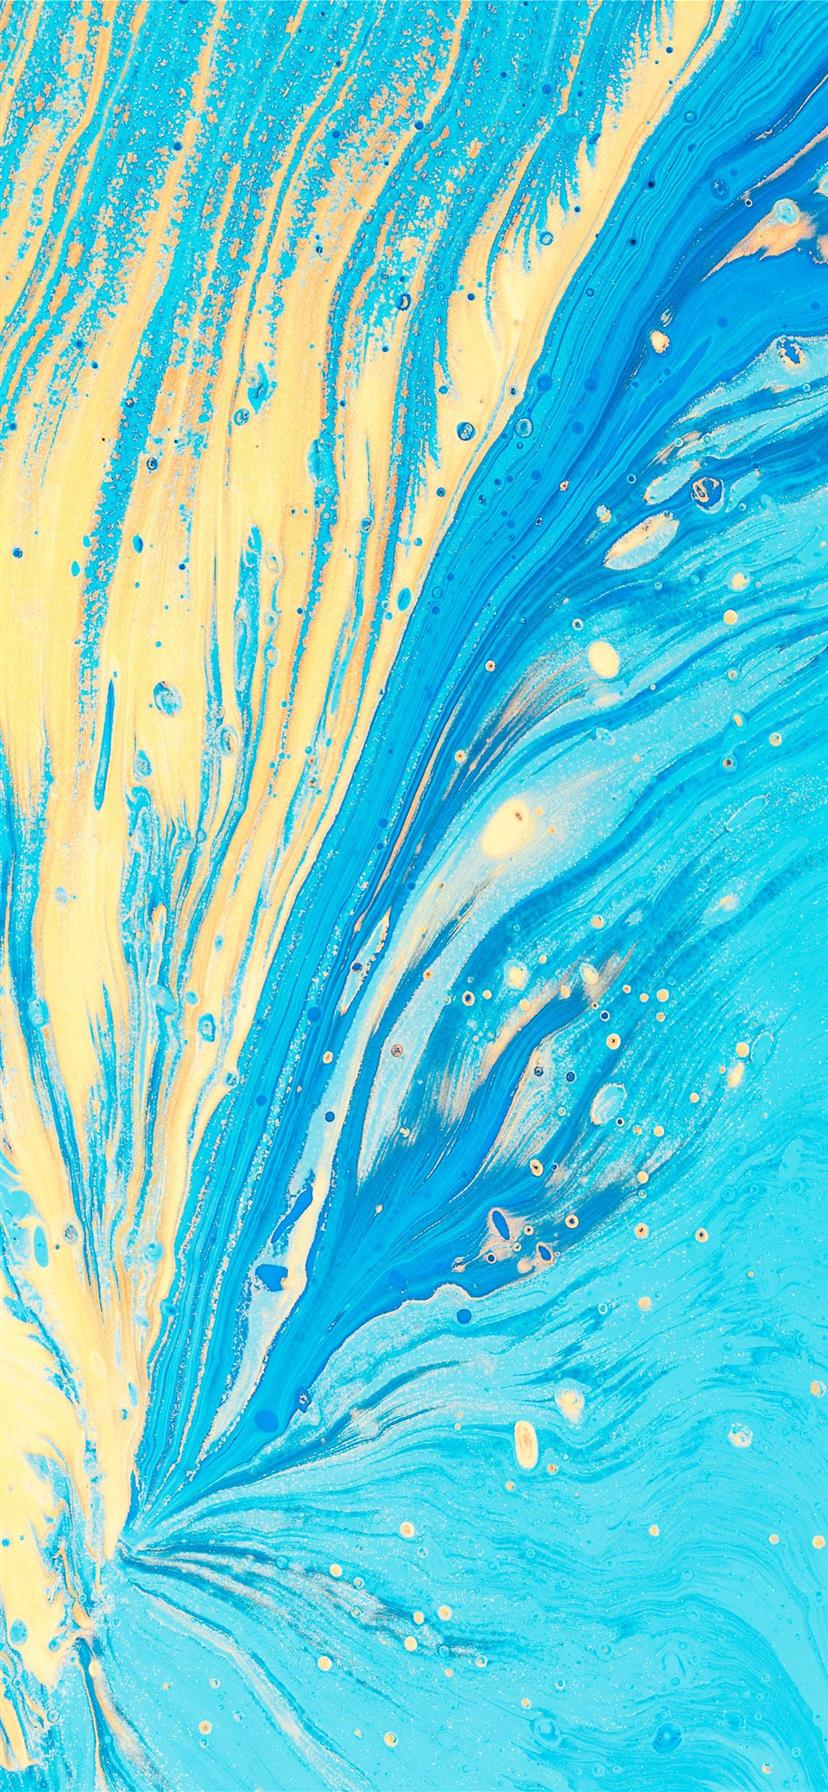 Blue And Yellow Abstract Artwork Iphone X Wallpapers Free Download